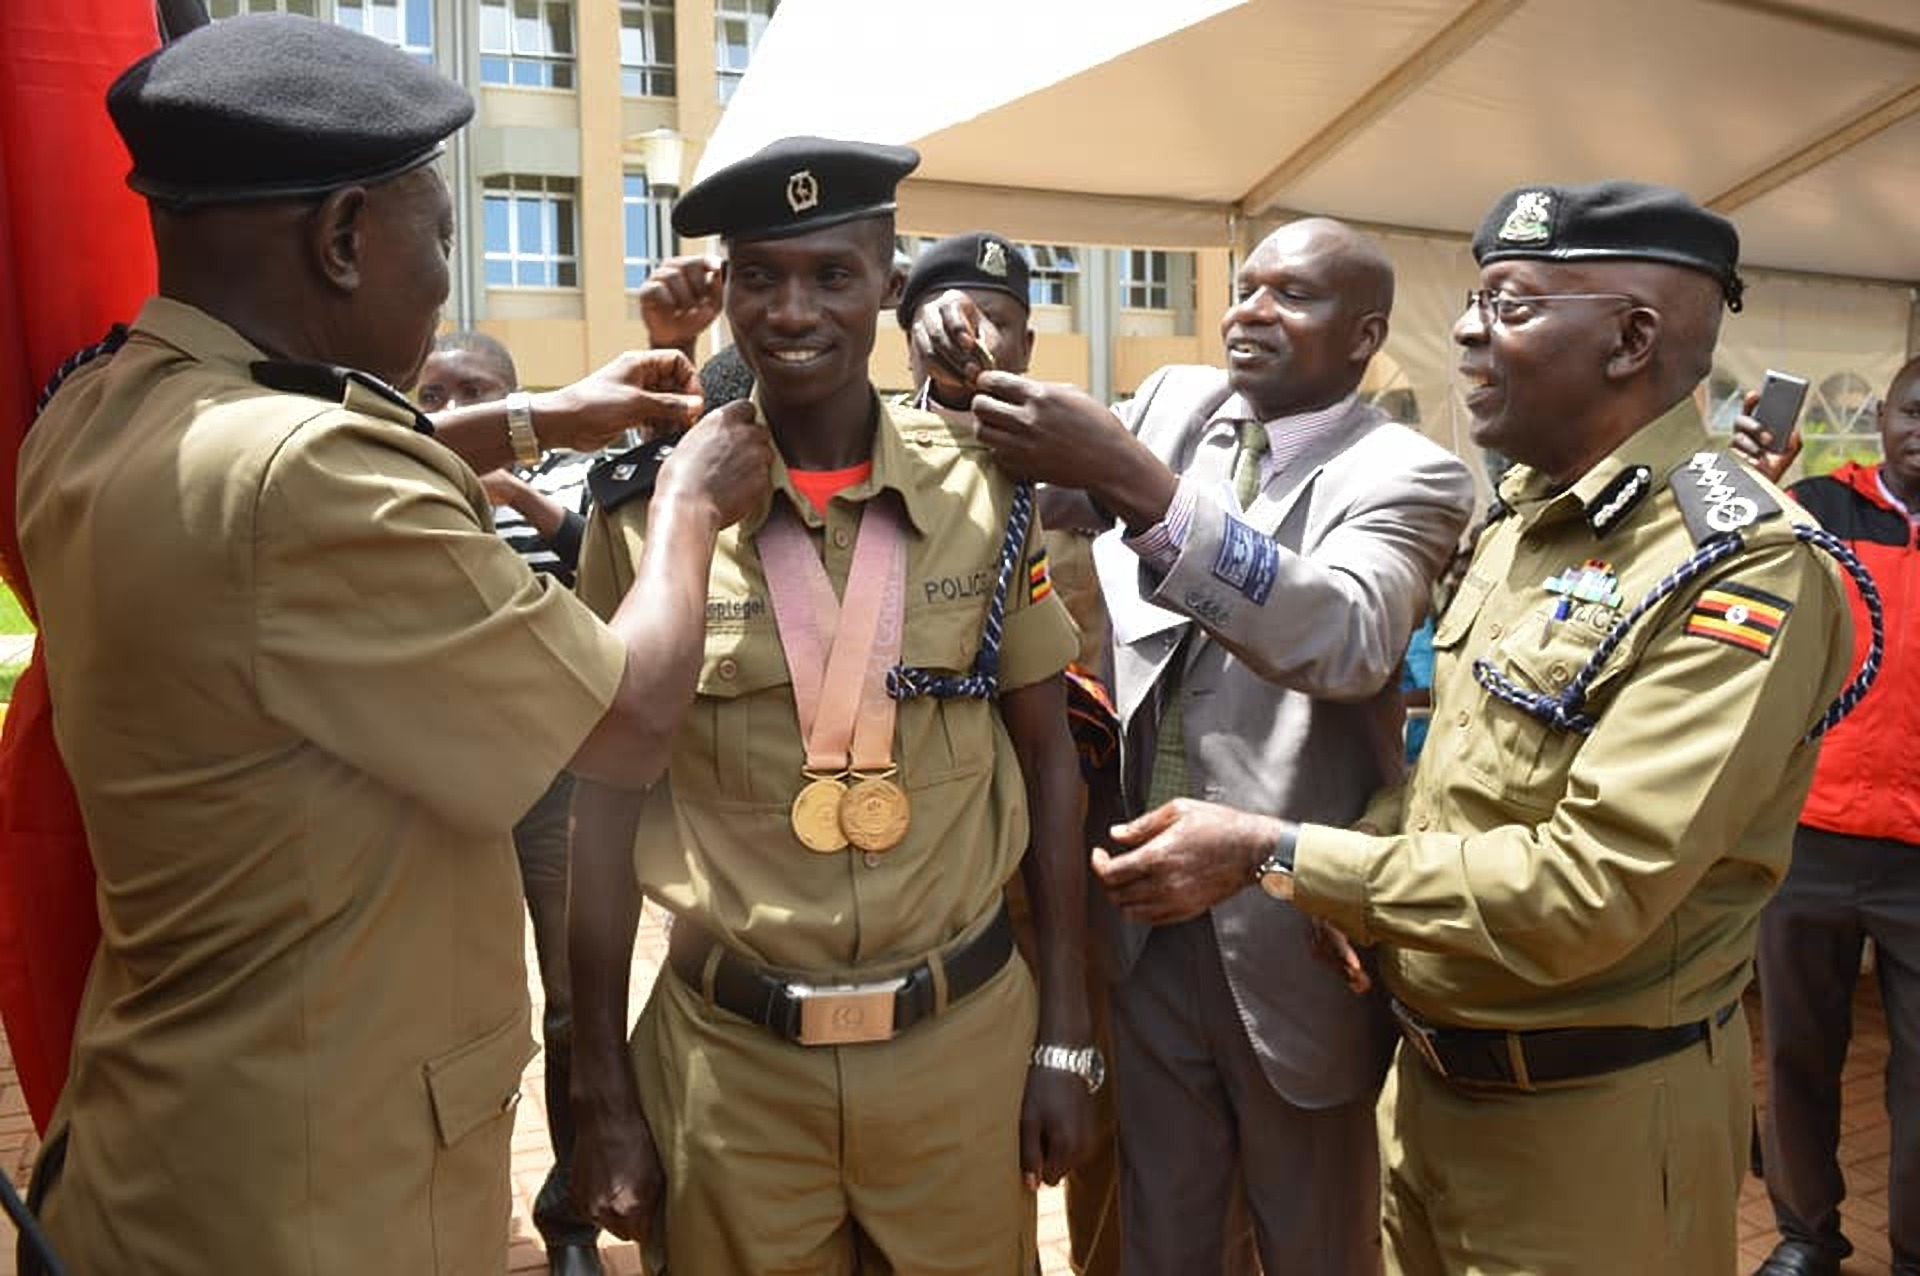 Joshua Cheptegei recommended for promotion to the rank of Assistant Superintendent of Police